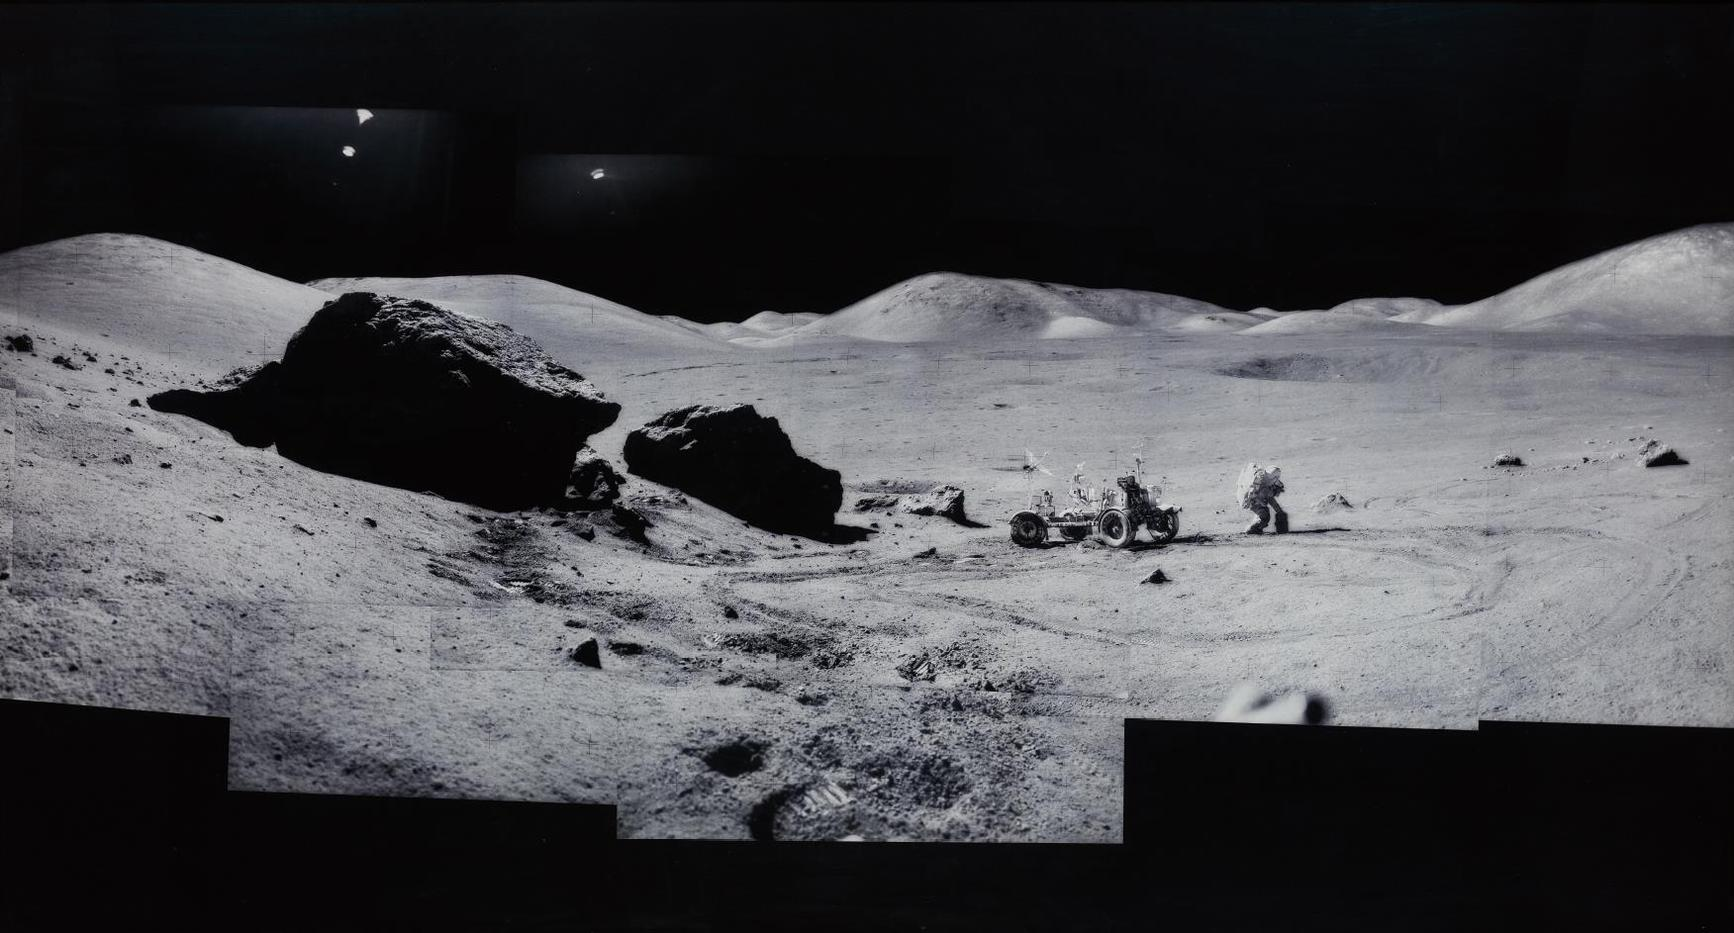 Michael Light-Composite Of Eugene Cernan And The Lunar Rover At 'Split Rock', Photographed By Harrison Scmitt, Apollo 17, December 7-19, 1972, From The Project Full Moon-1999